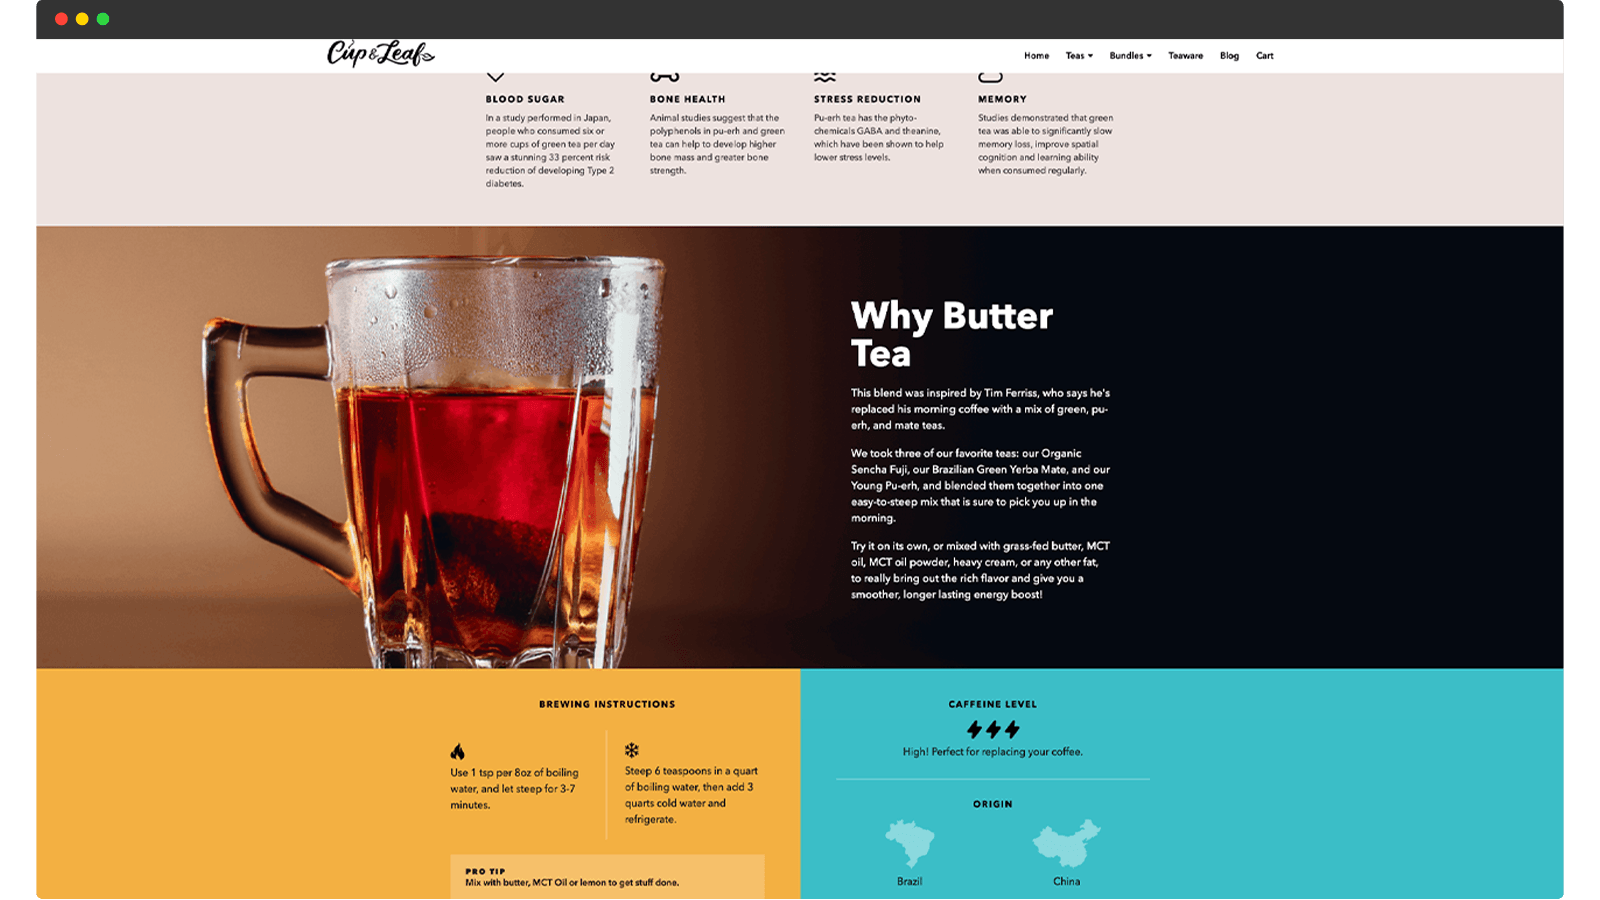 Cup and Leaf product page